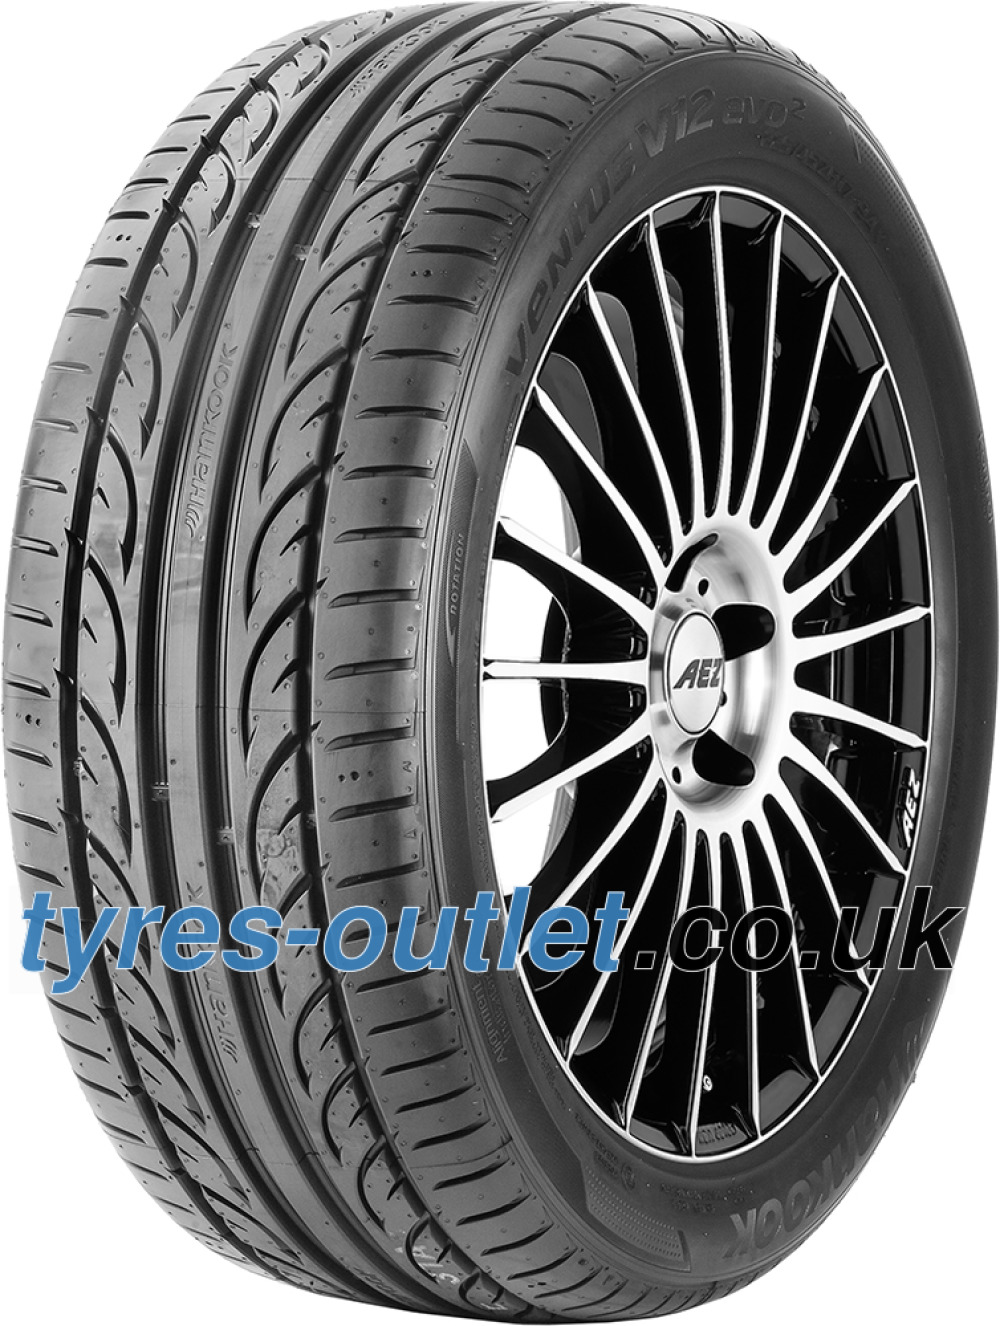 Hankook Ventus V12 Evo 2 K120 ( 255/30 ZR19 91Y XL with rim protection (MFS) SBL )